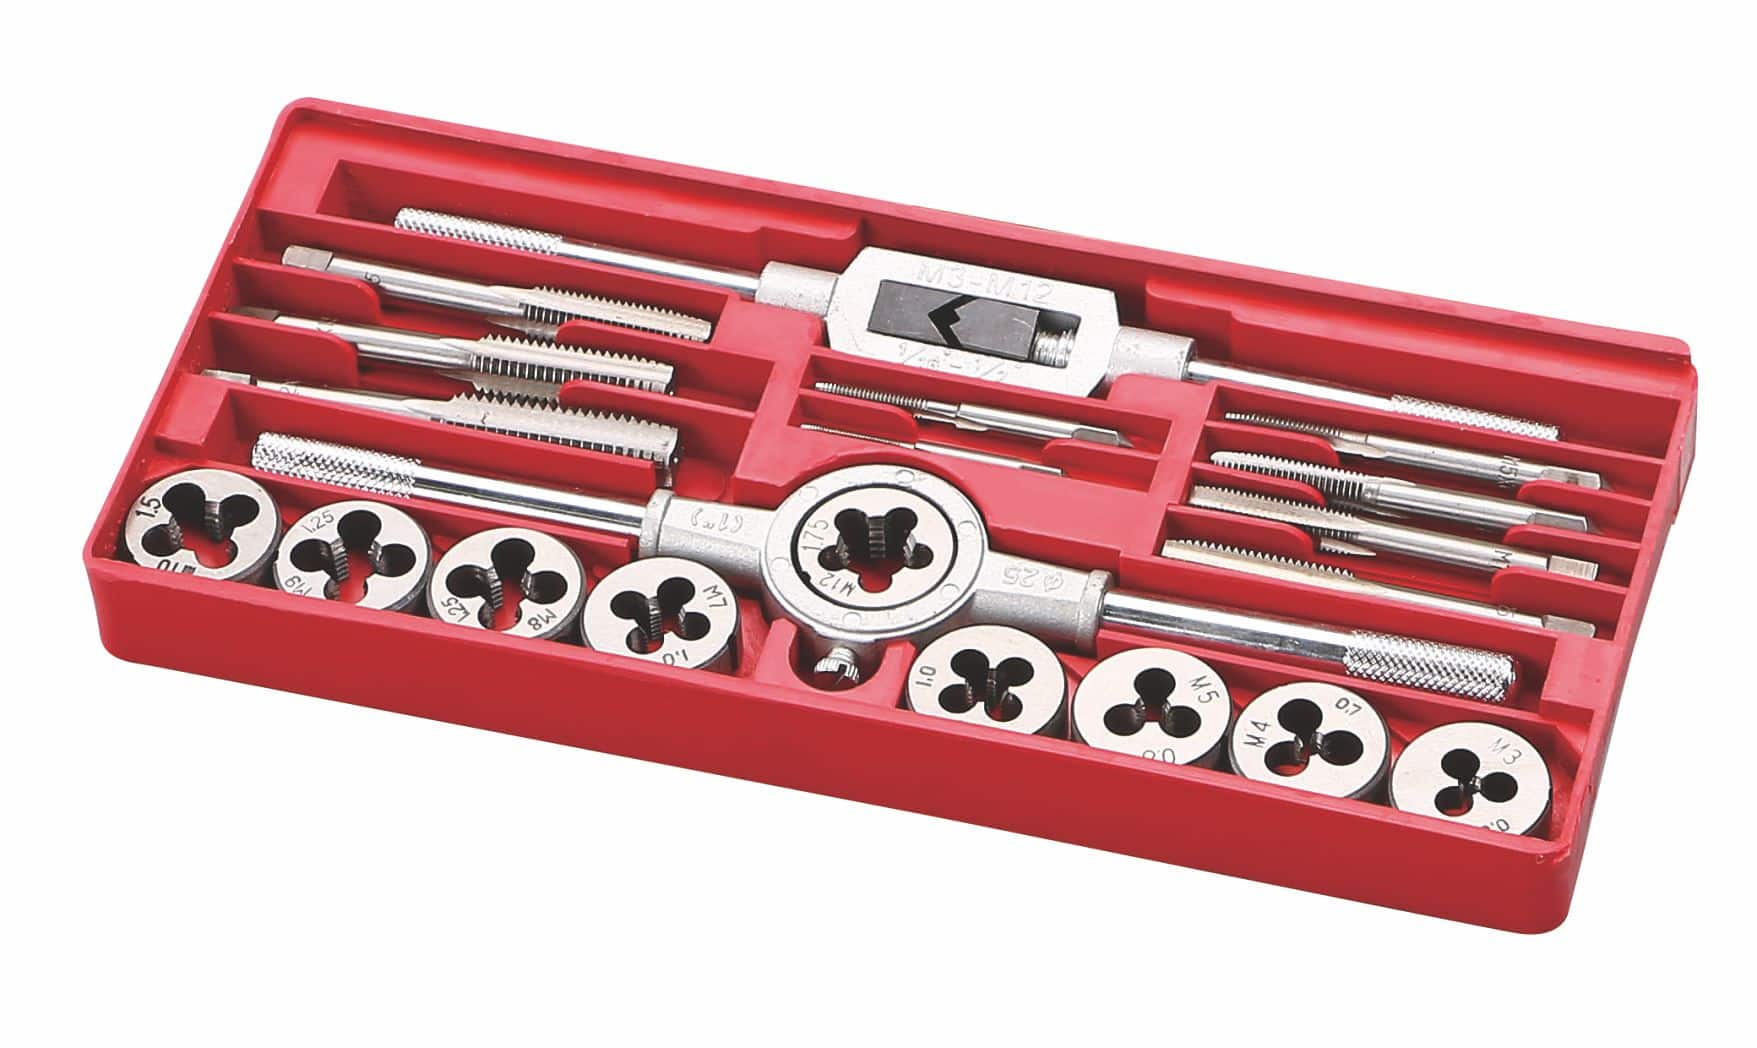 Antuo Industrial toolking Other Hand Tools 12 pieces tap and die assortment  Professional gun